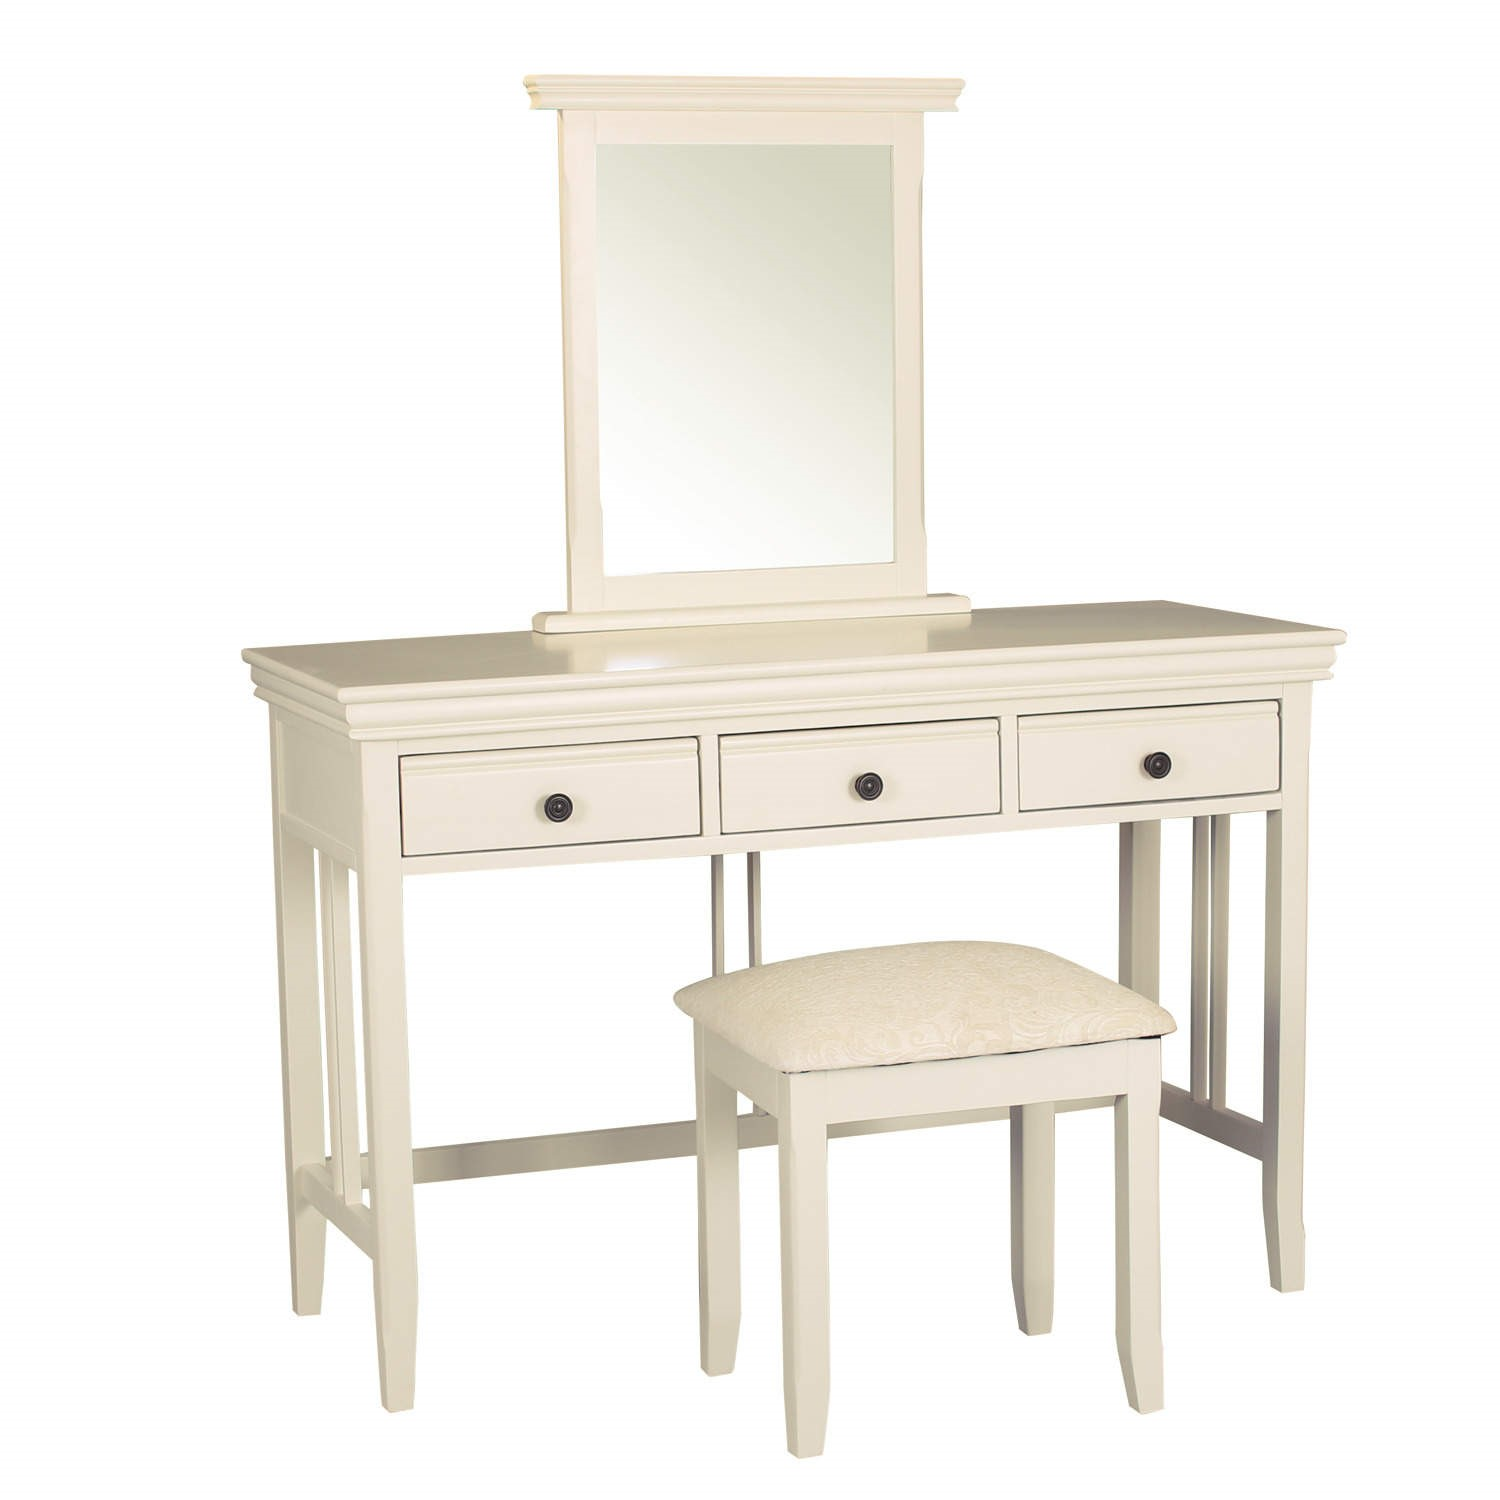 savannah dressing table set in ivory cream includes mirror and stool